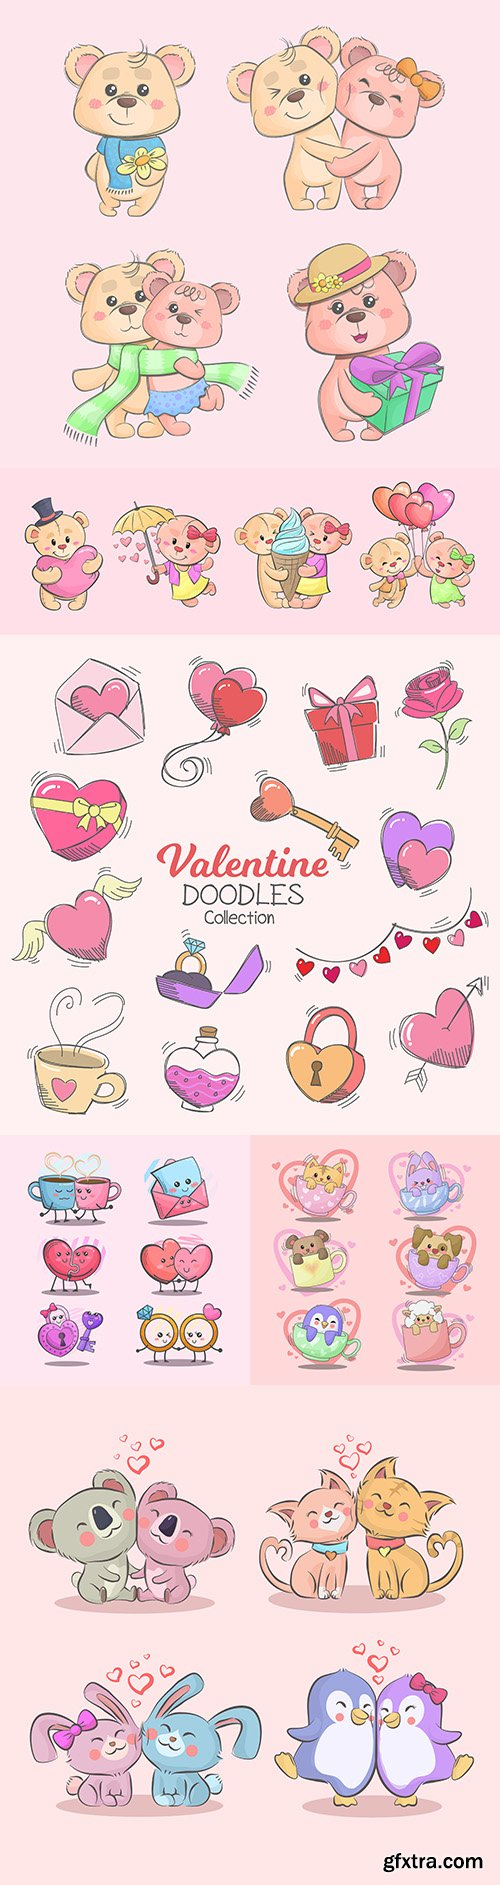 Happy Valentine's Day funny animals and collection elements